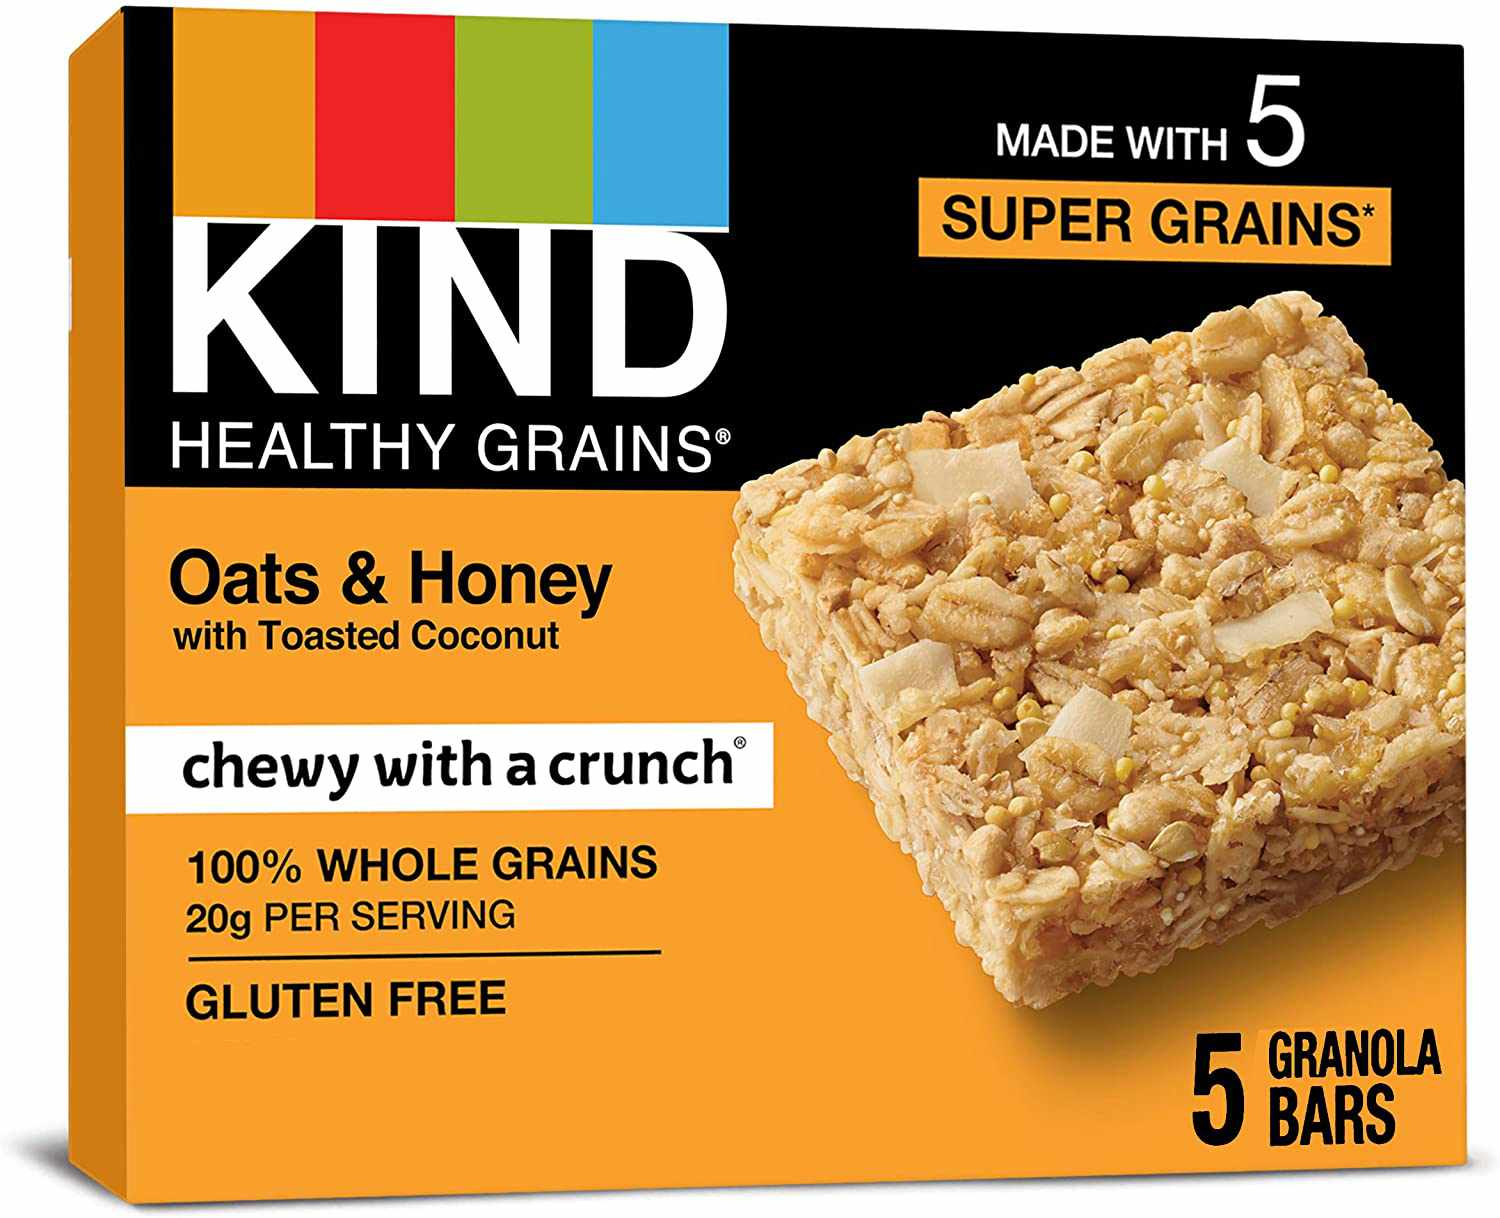 KIND Healthy Grains Oats & Honey with Toasted Coconut Bar